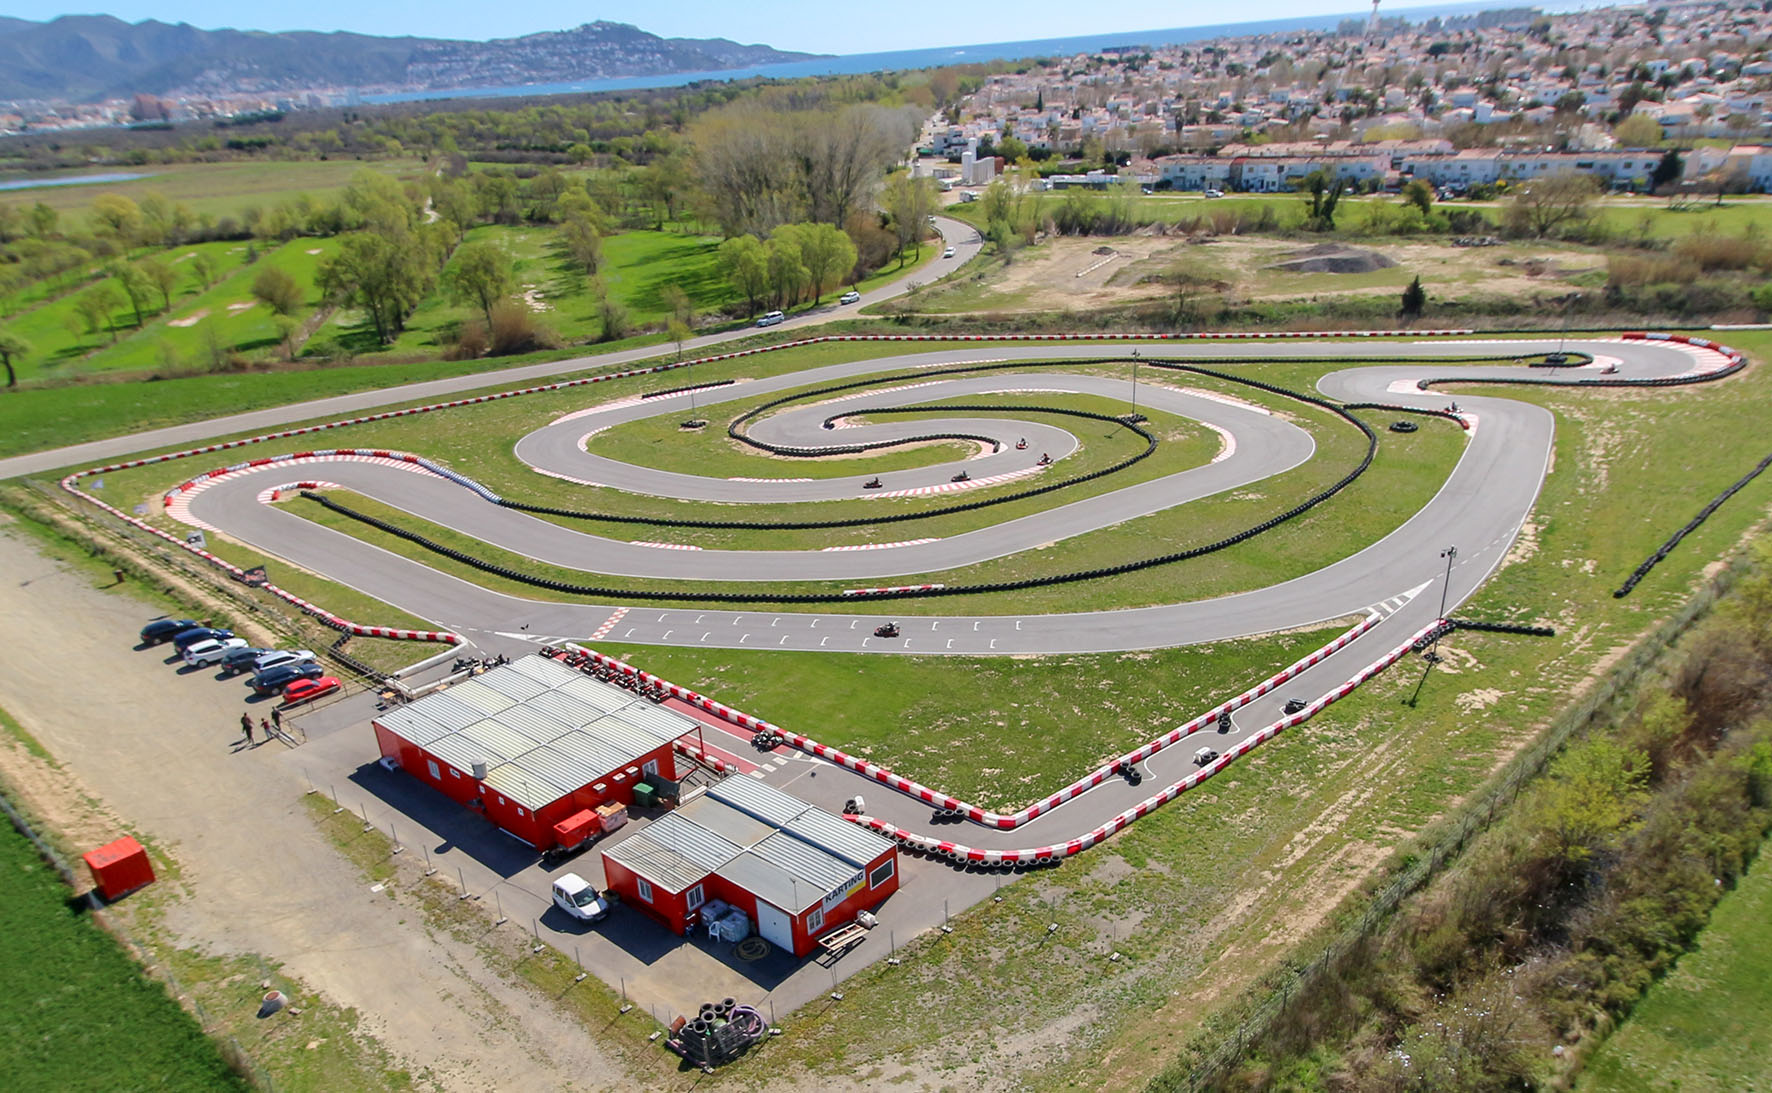 Karting Empuriabrava